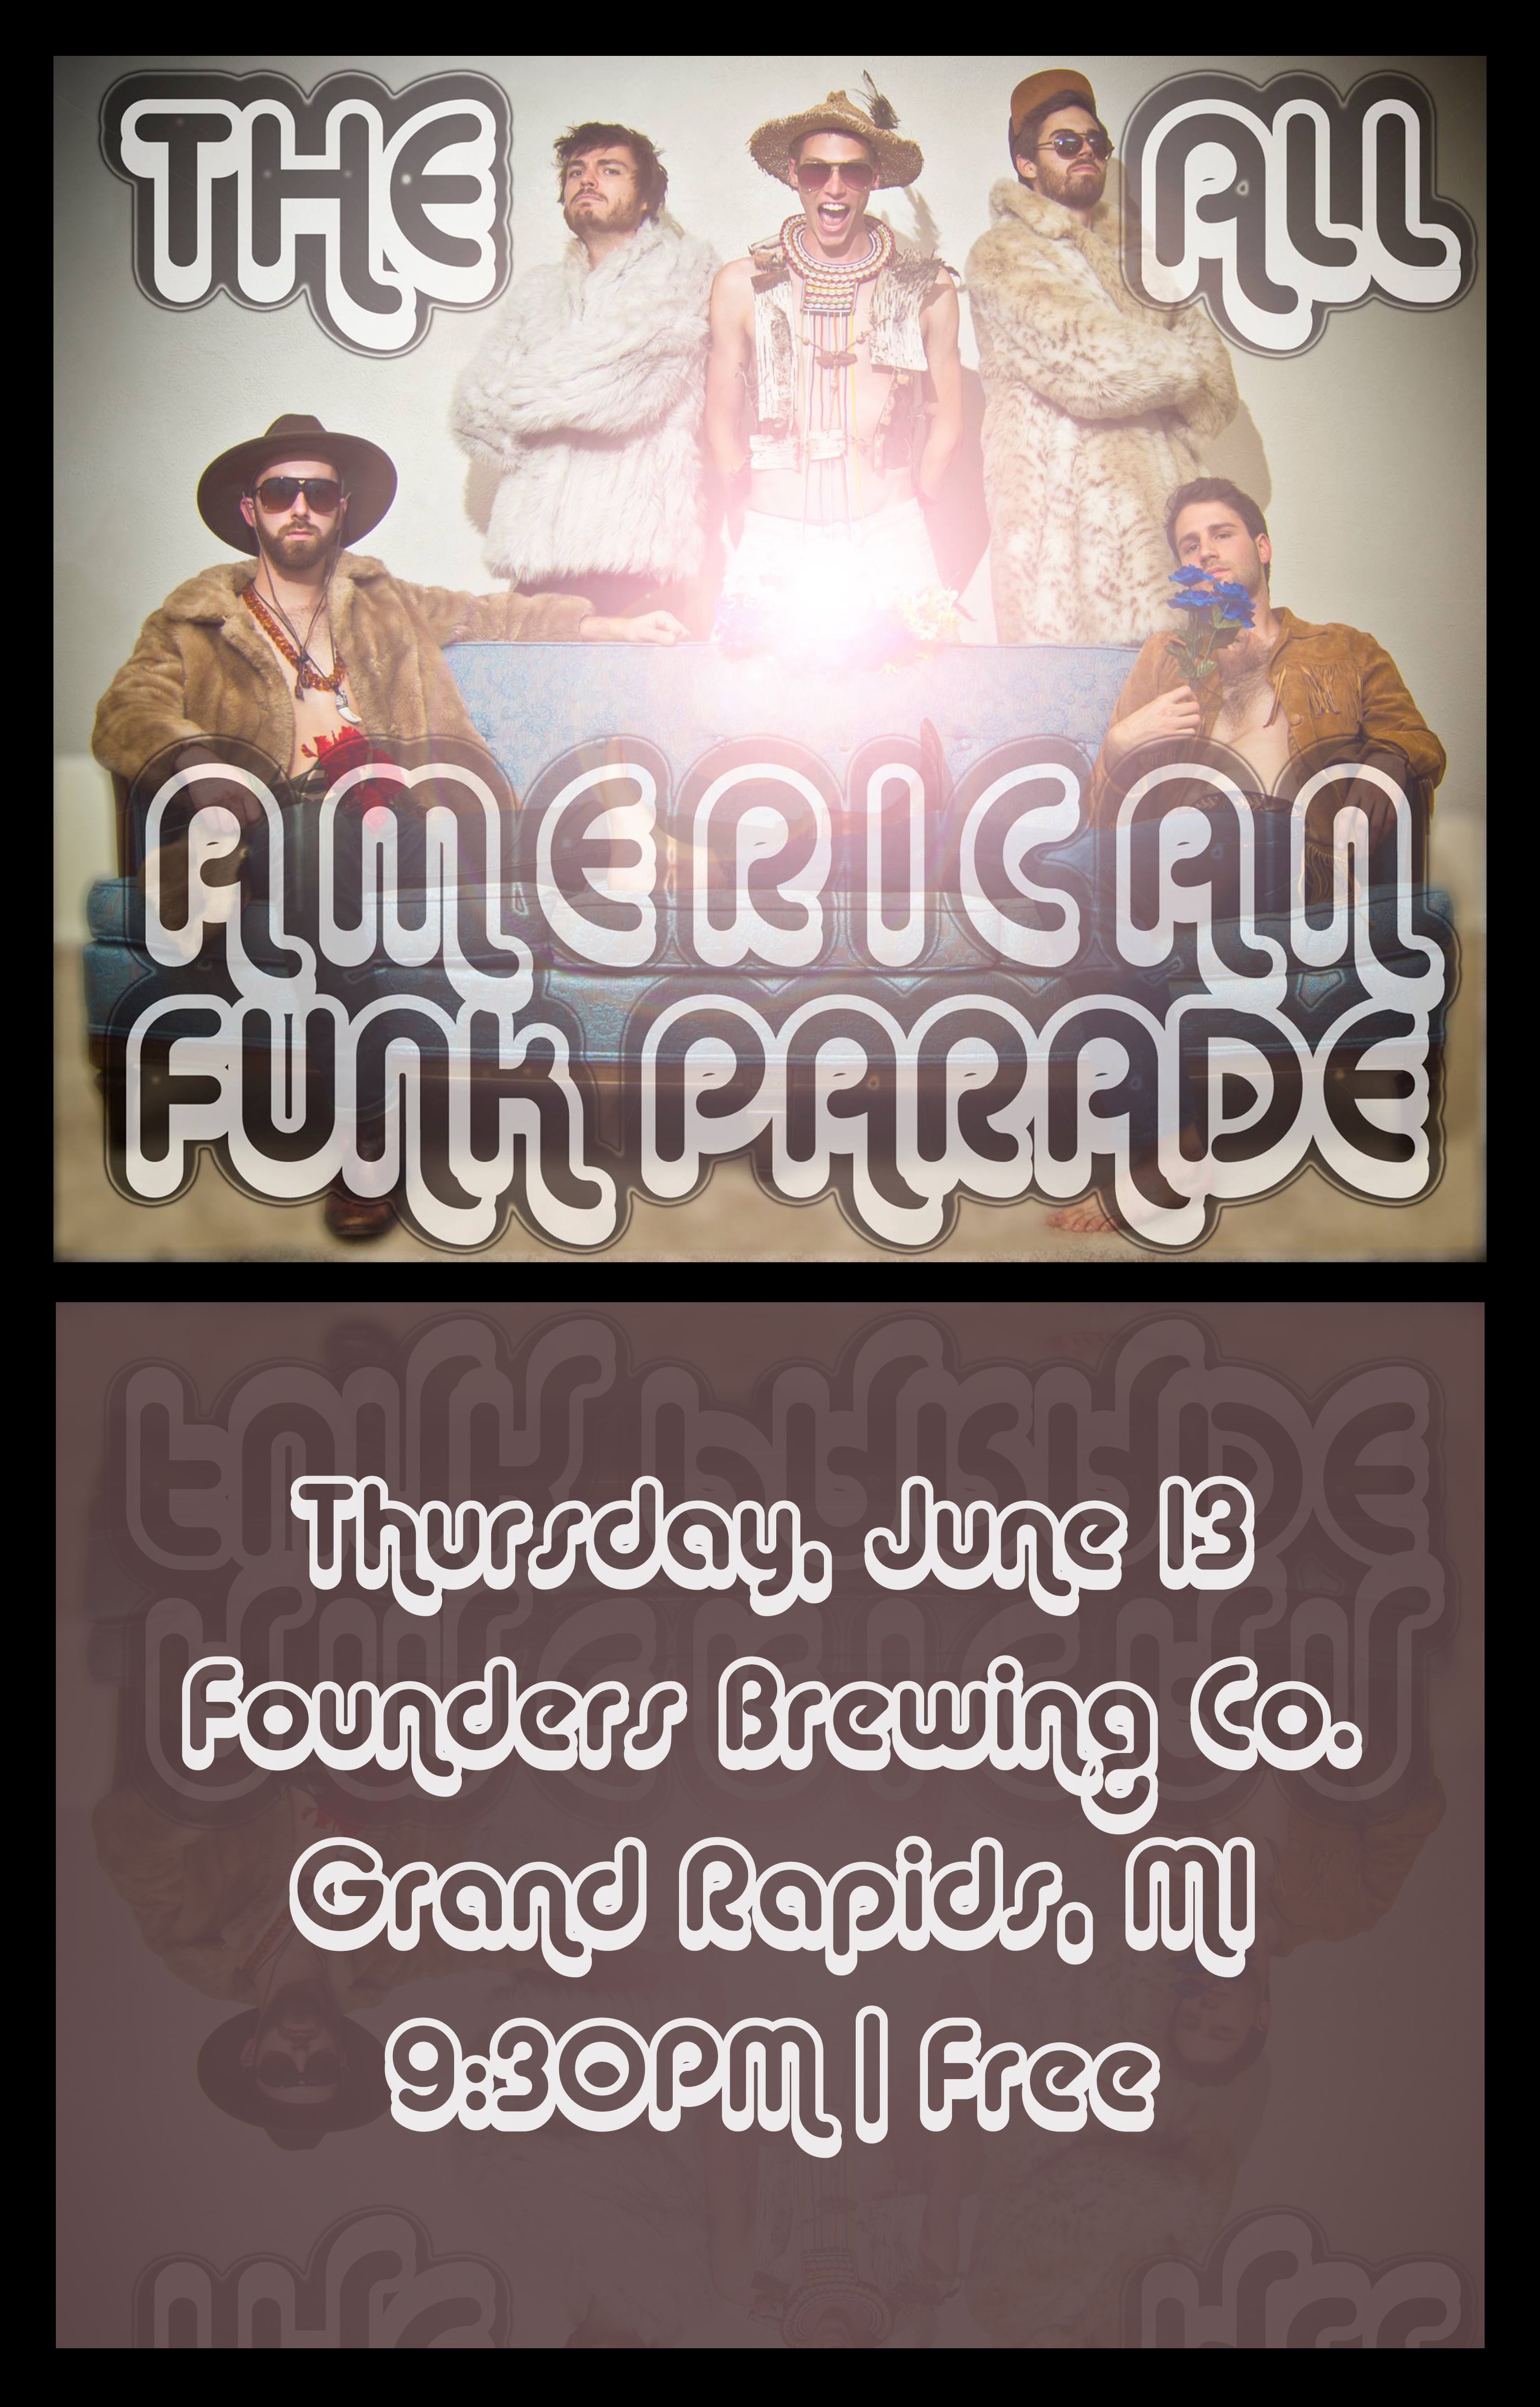 The All American Funk Parade event poster